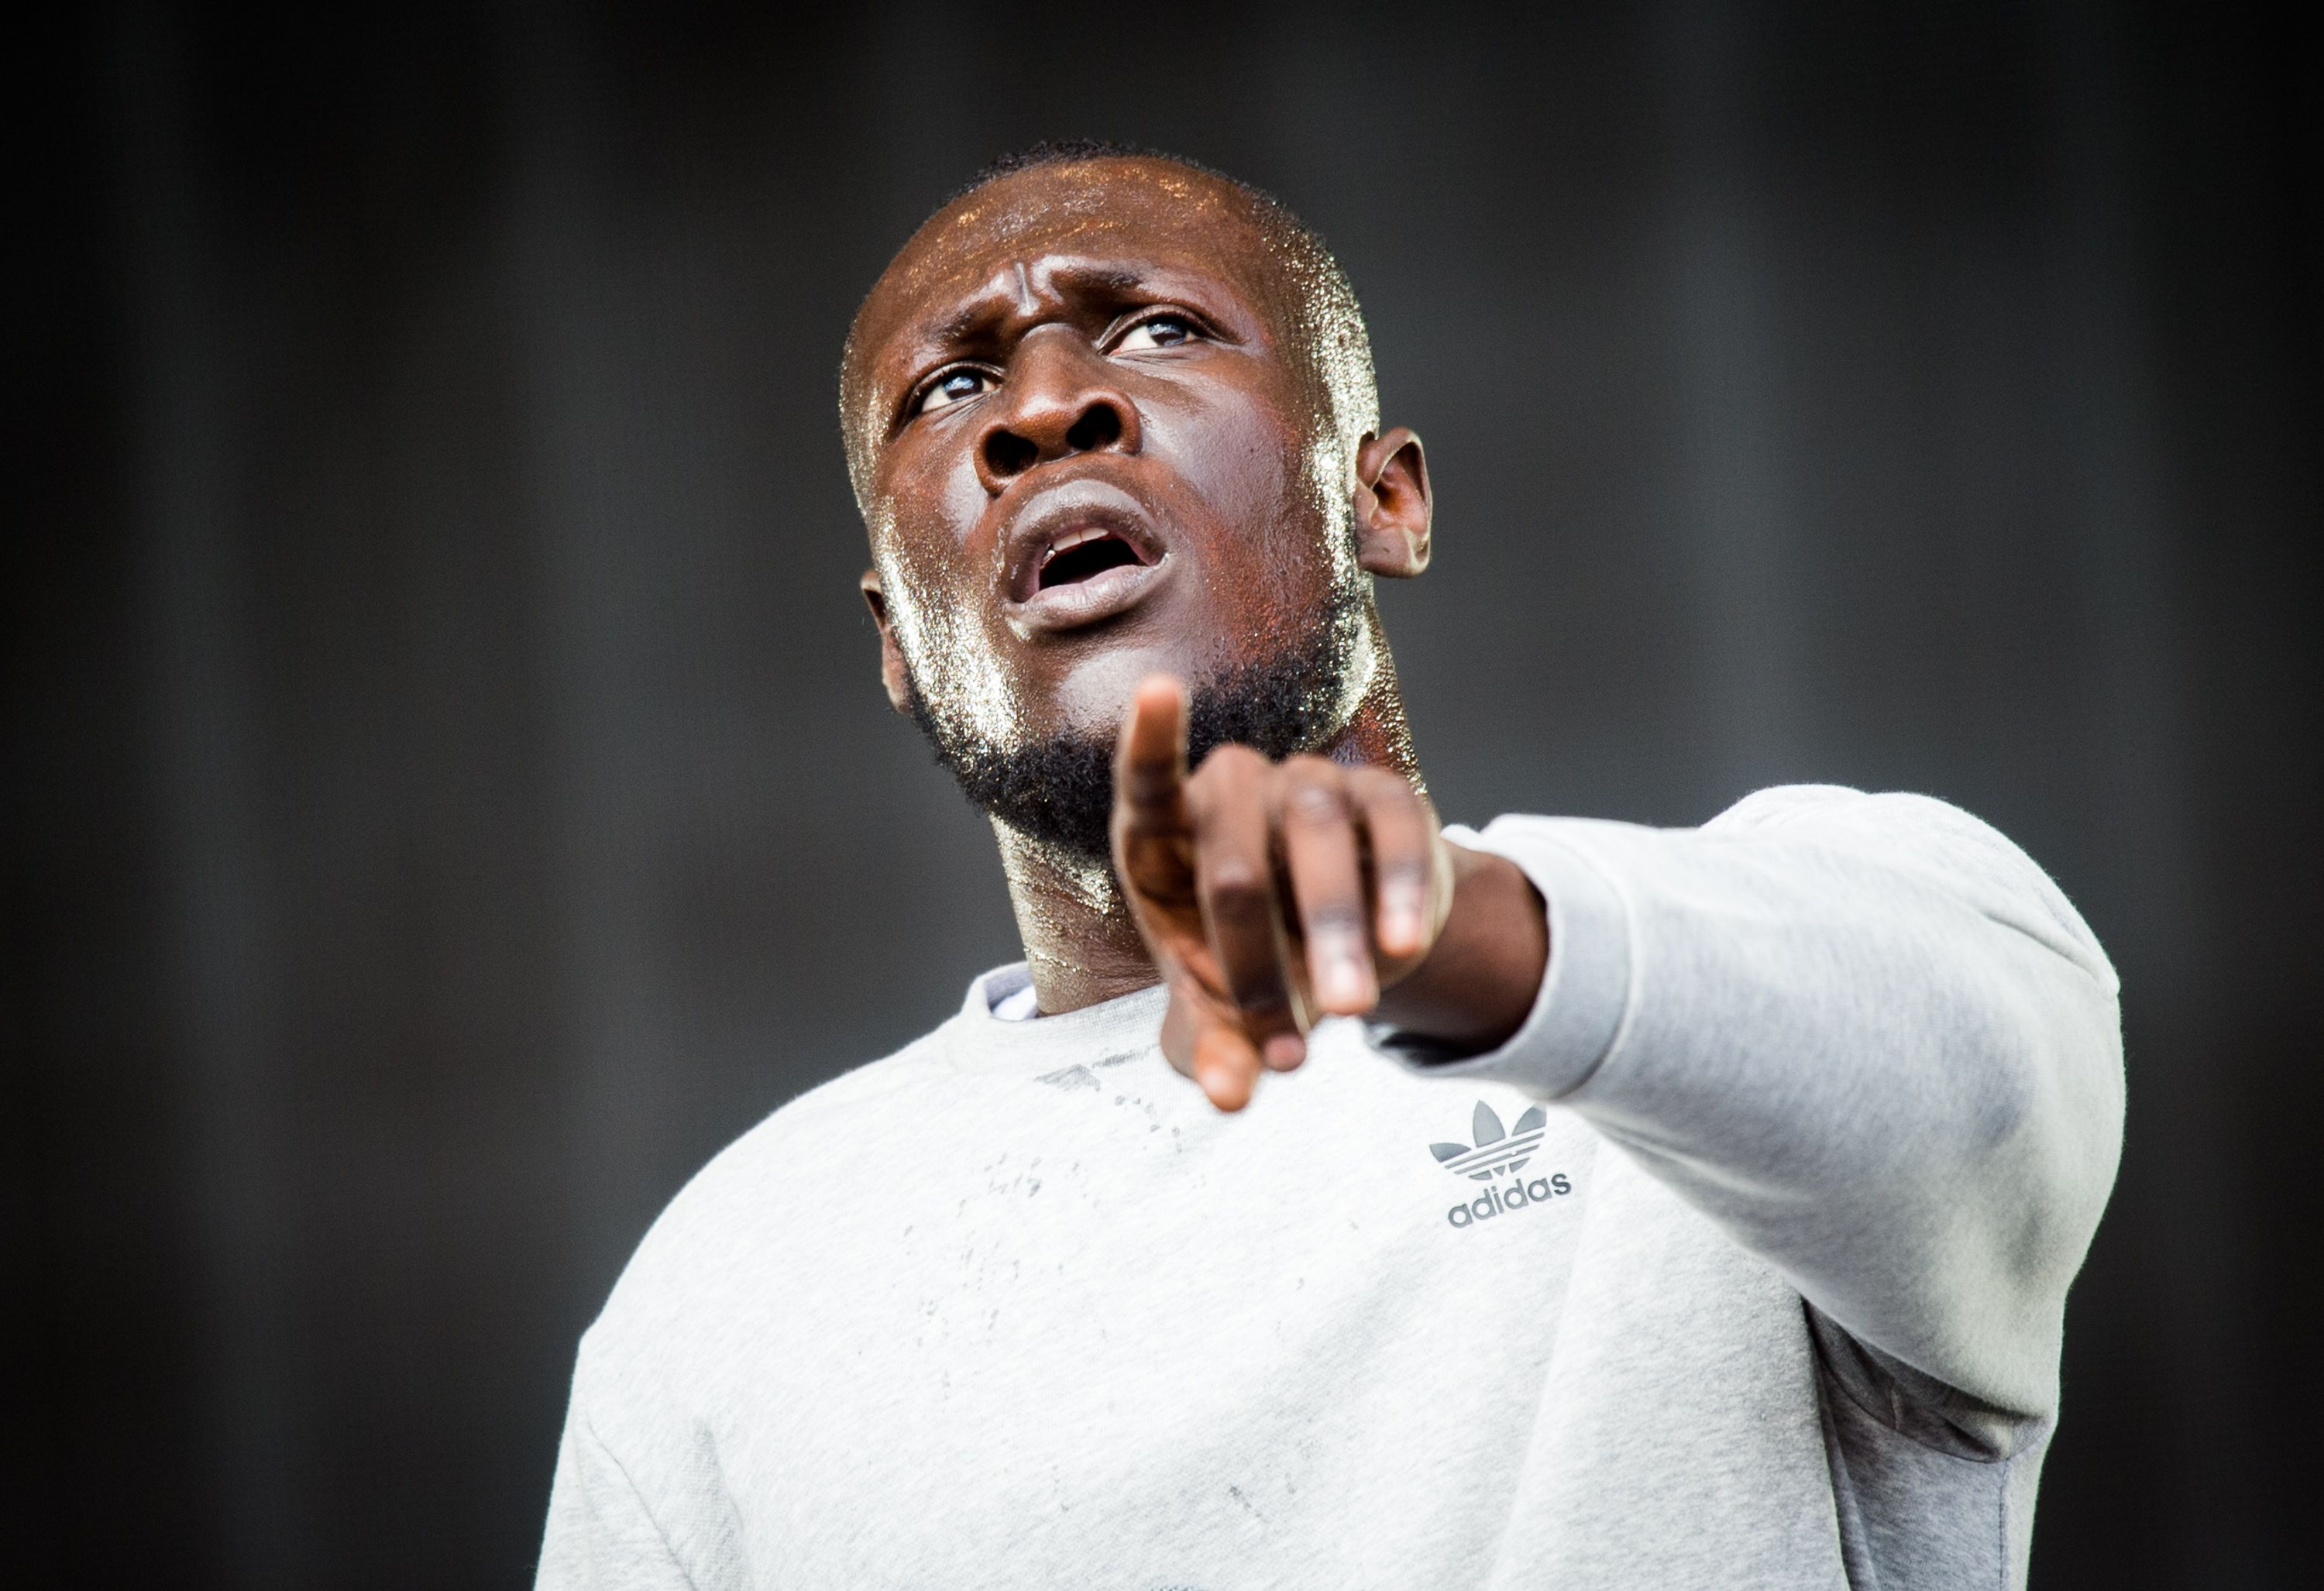 Stormzy has strong feelings on Jacob Rees-Mogg's insensitive Grenfell comments